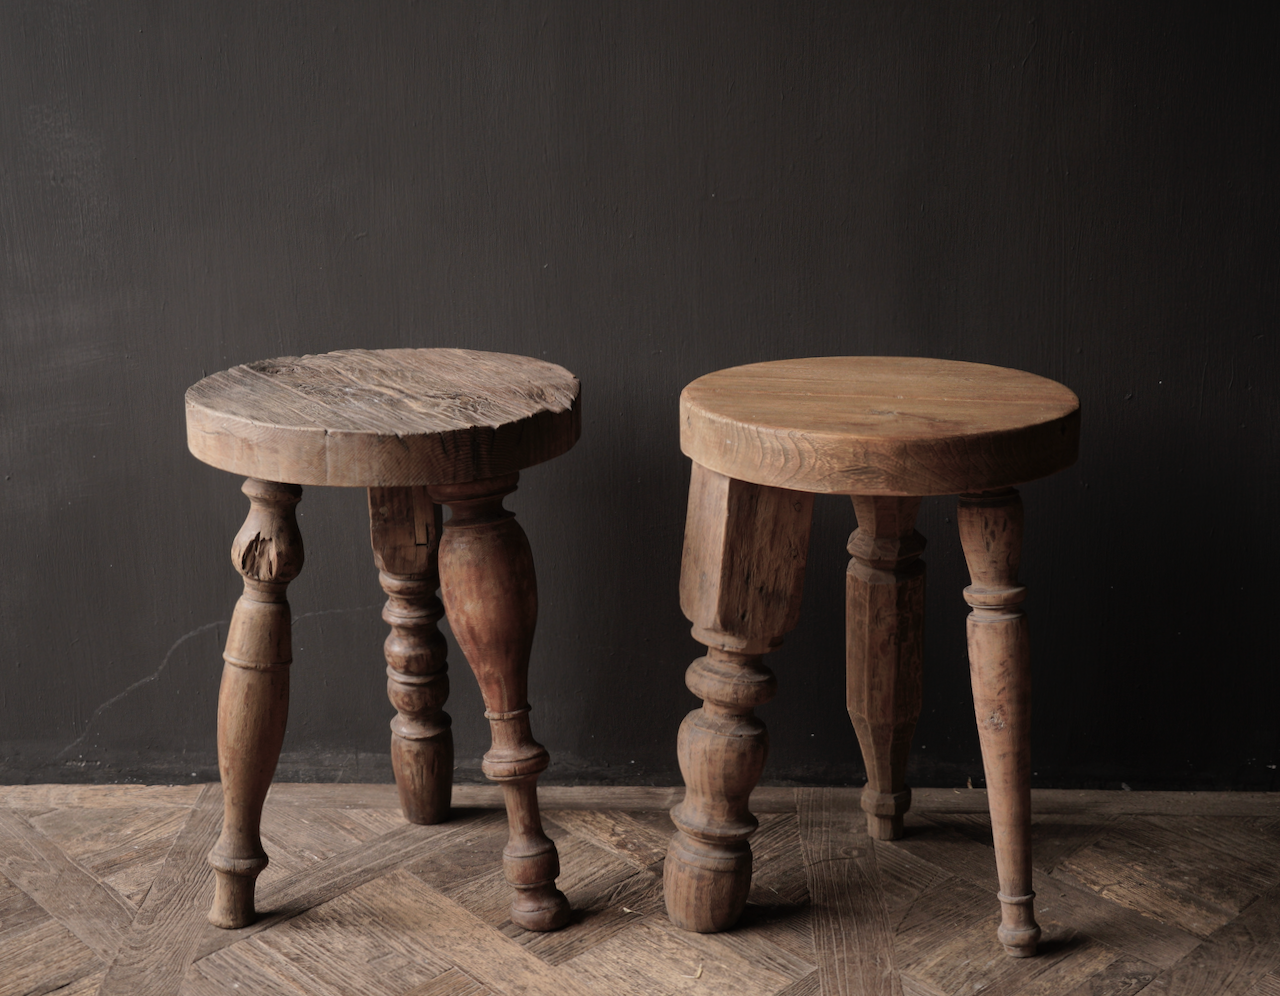 Unique round sturdy wooden side table with different legs-4